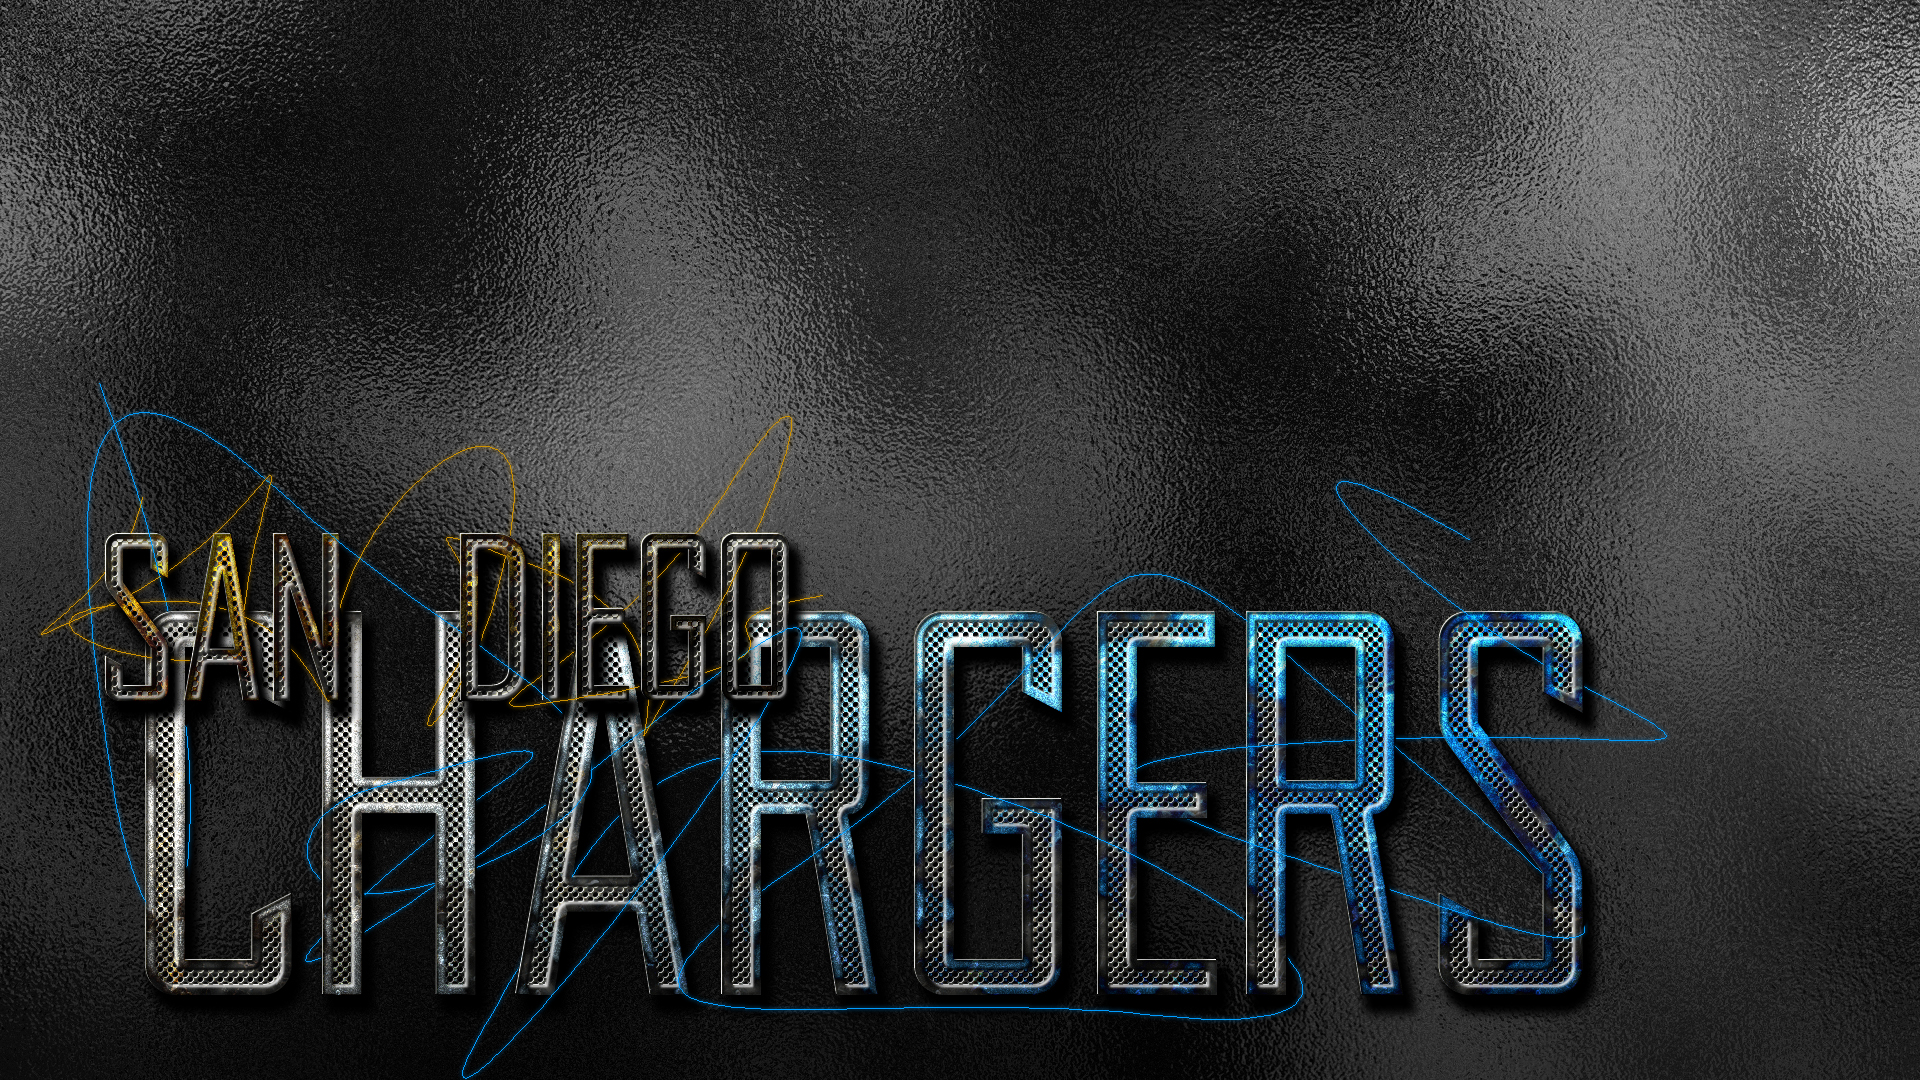 San-diego-chargers-wallpaper-wonderful-inspiring